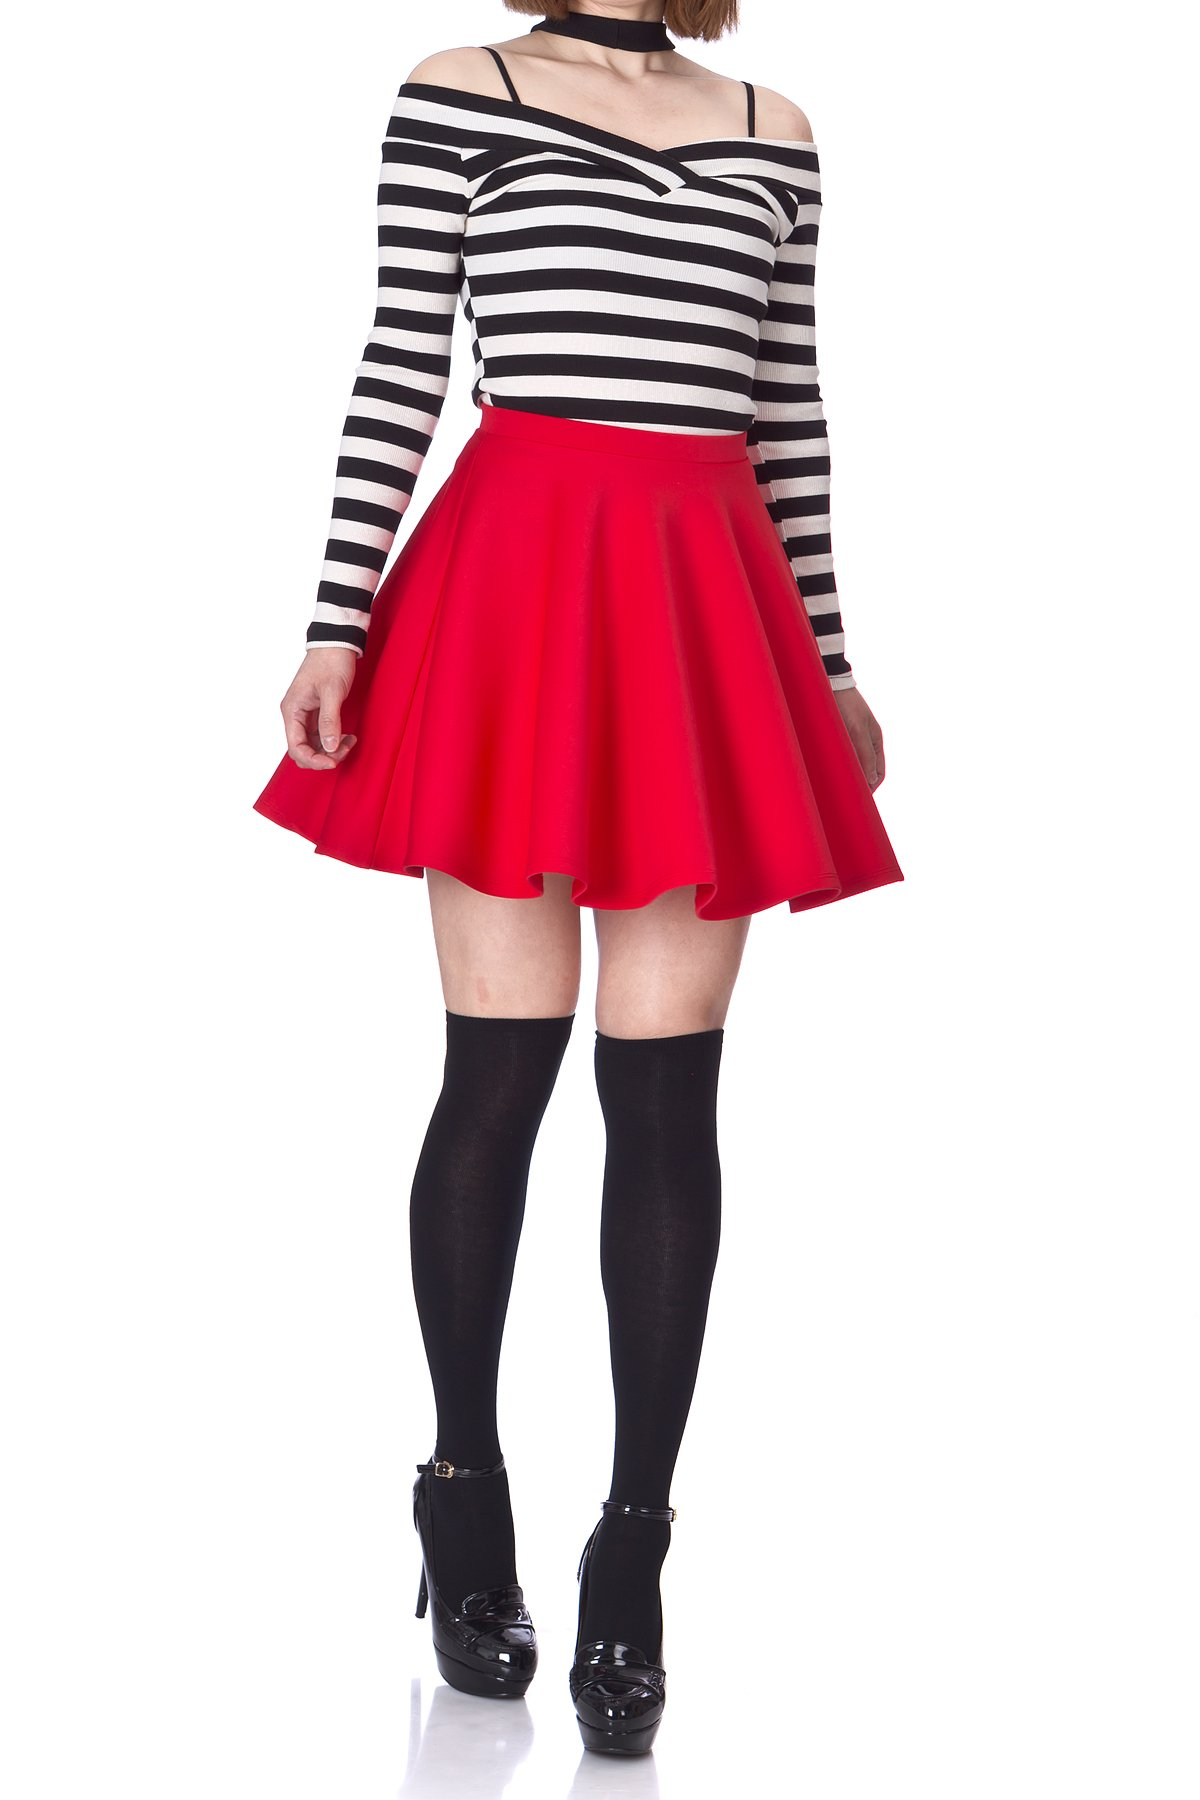 Flouncy High Waist A line Full Flared Circle Swing Dance Party Casual Skater Short Mini Skirt Red 01 1